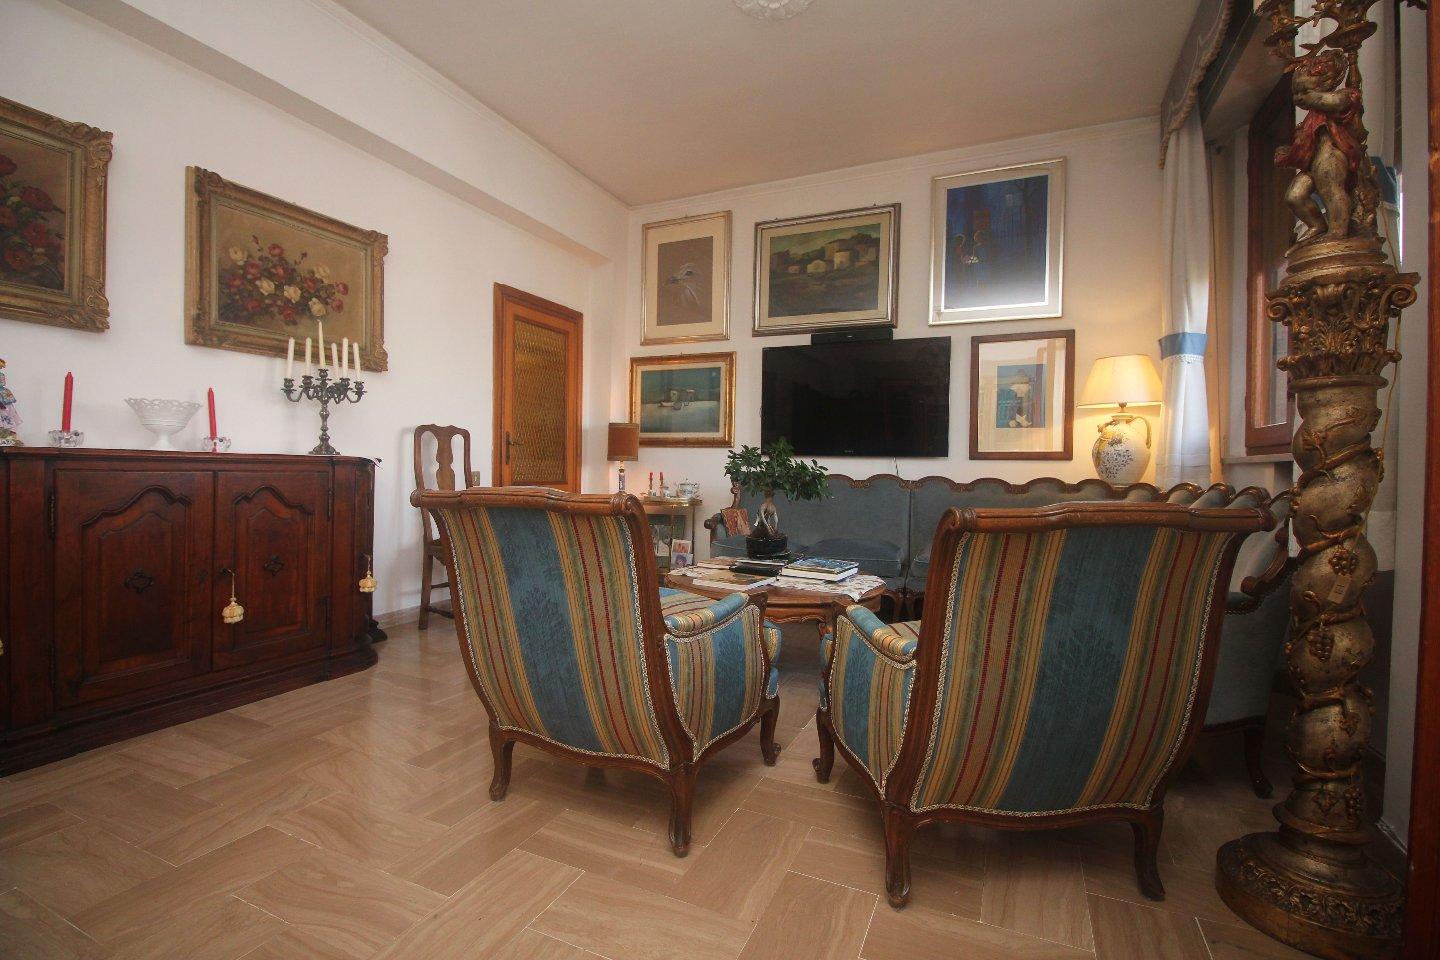 Apartment for sale in Fontebecci, Monteriggioni (SI)